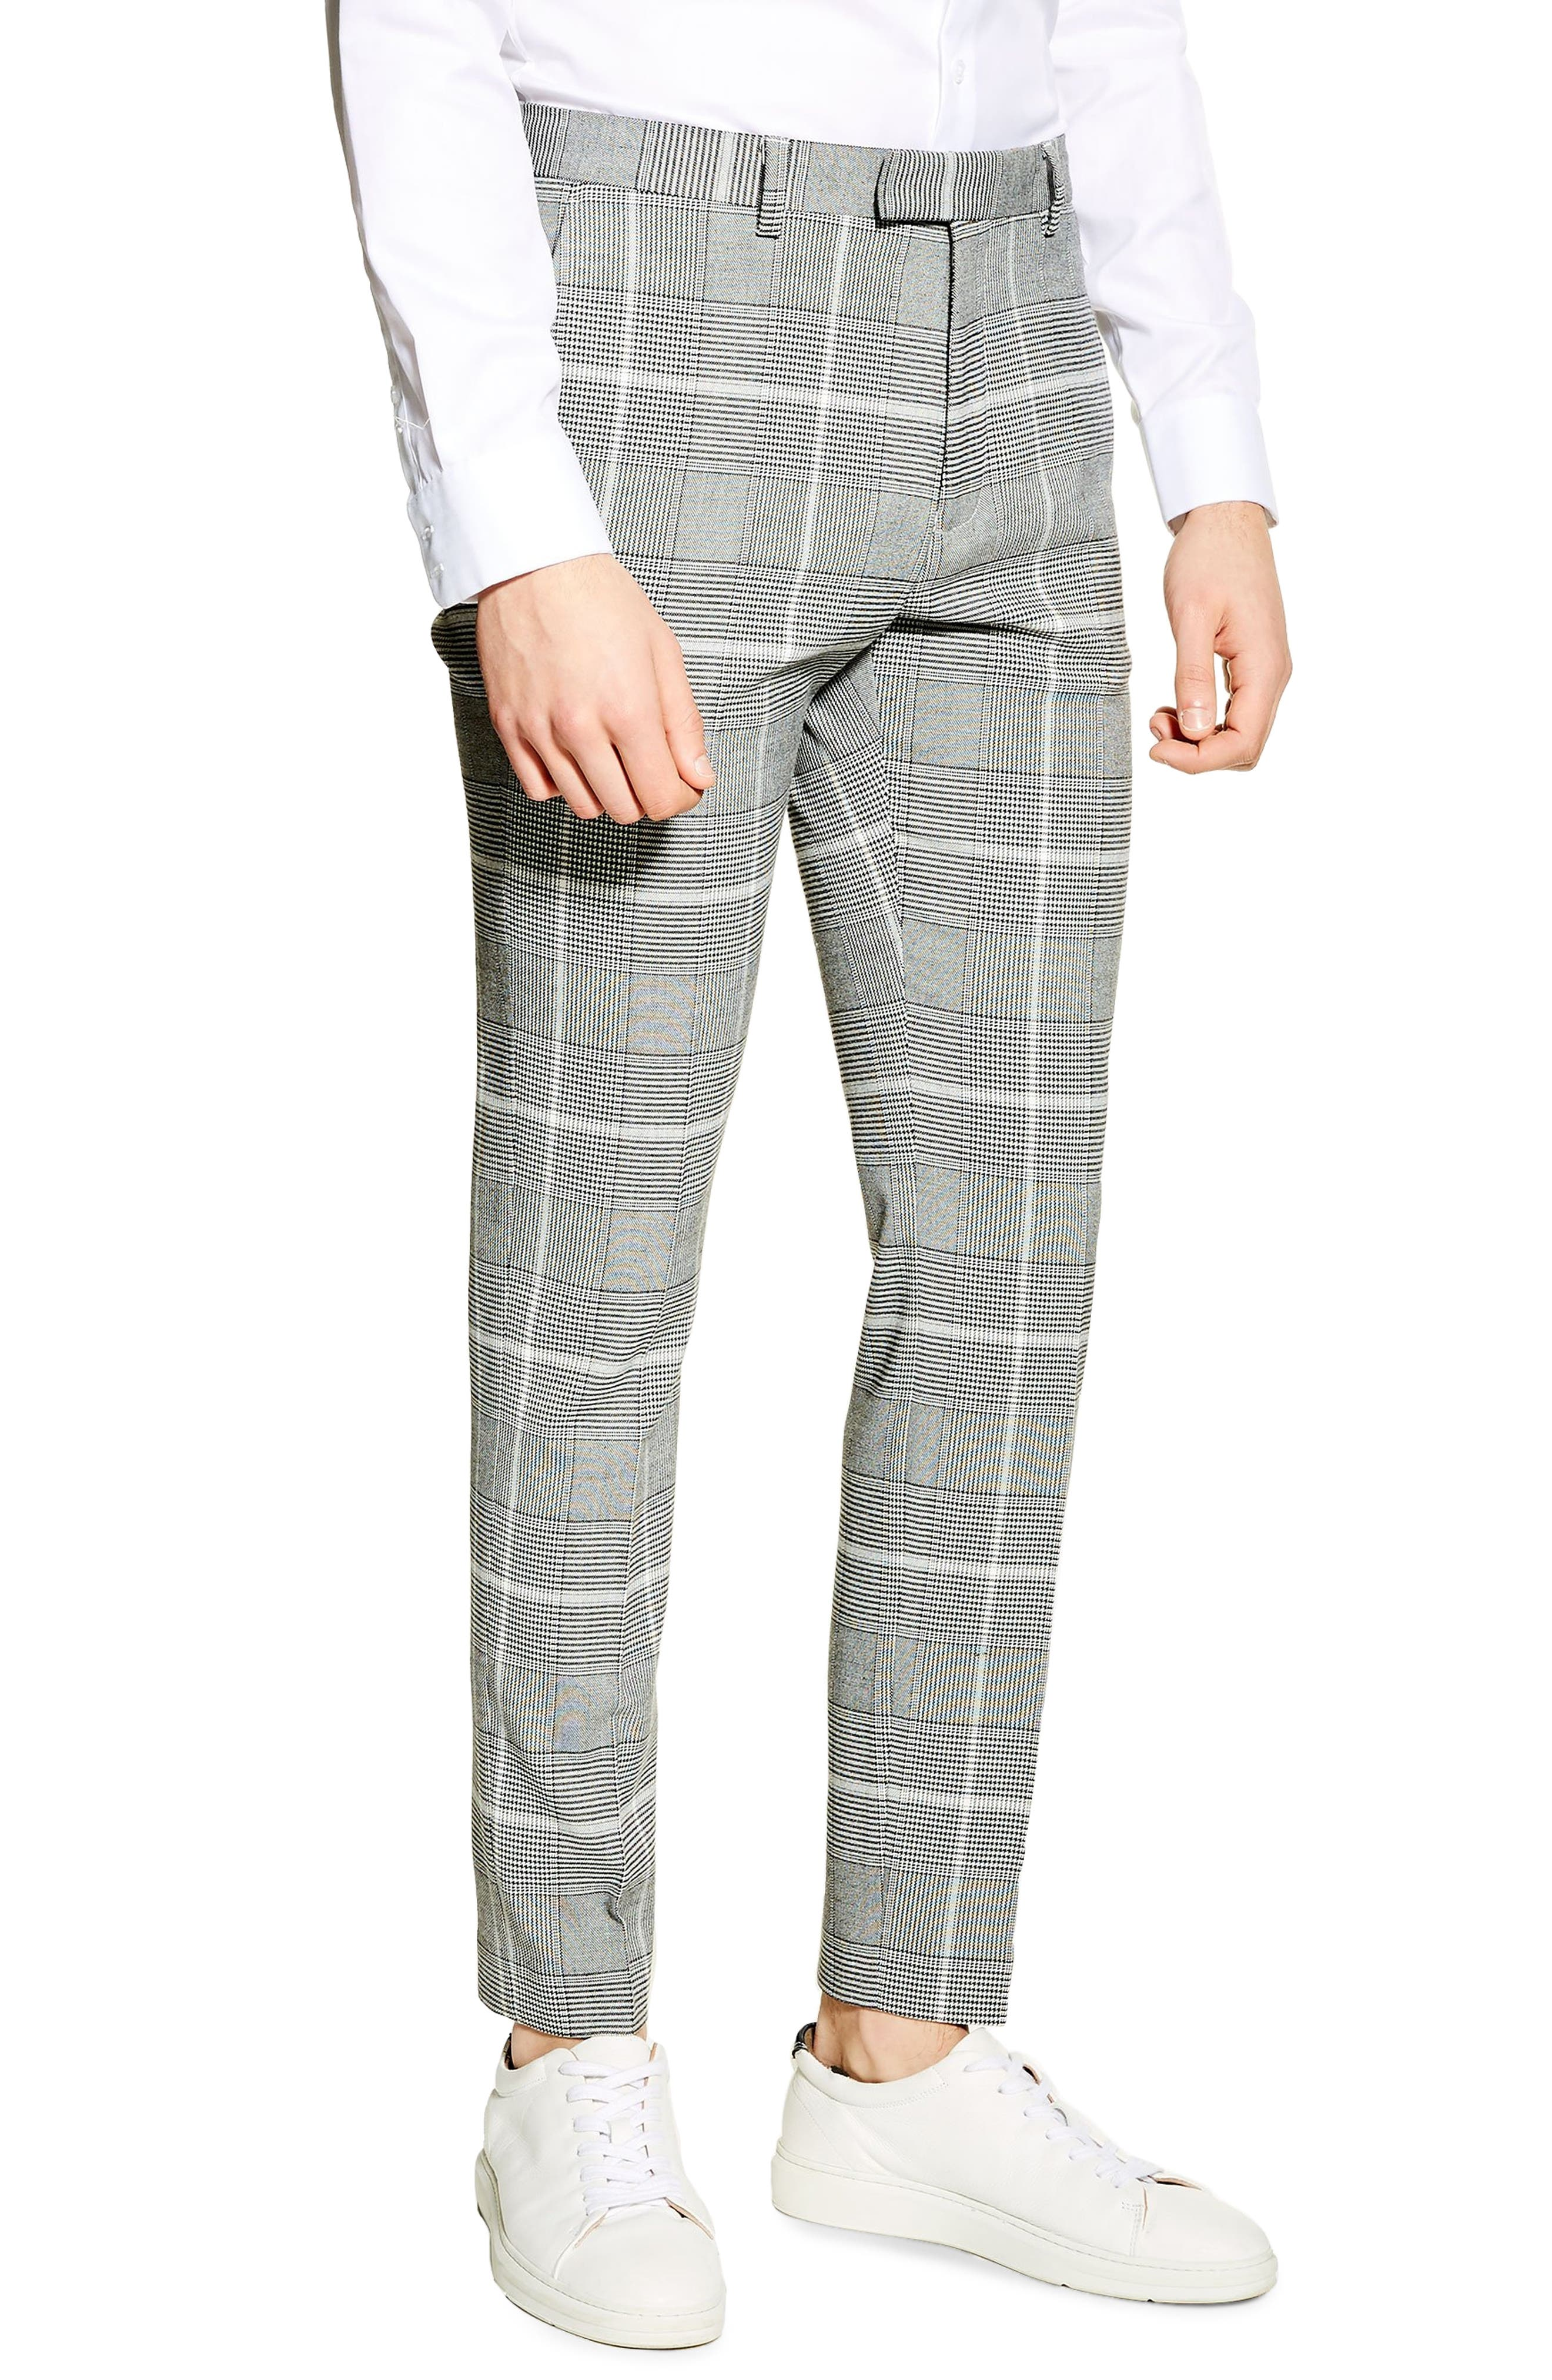 TOPMAN, Skinny Fit Check Trousers, Main thumbnail 1, color, 020